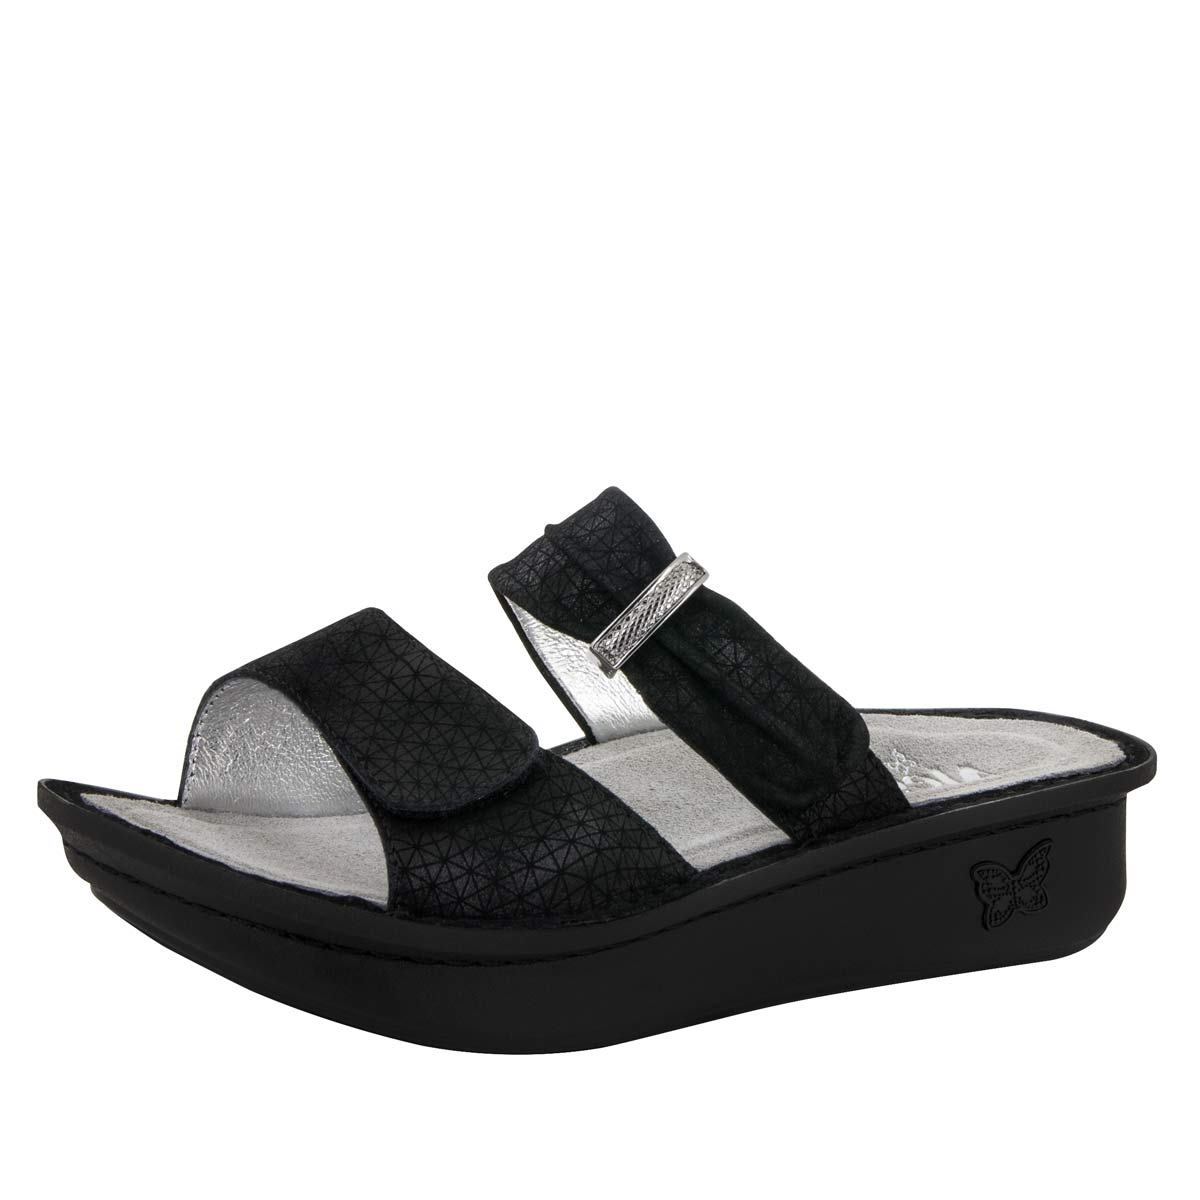 tempted solely blue shops relife florated comfort image velcro brooks lotus jeans giannone sandals shop comforter